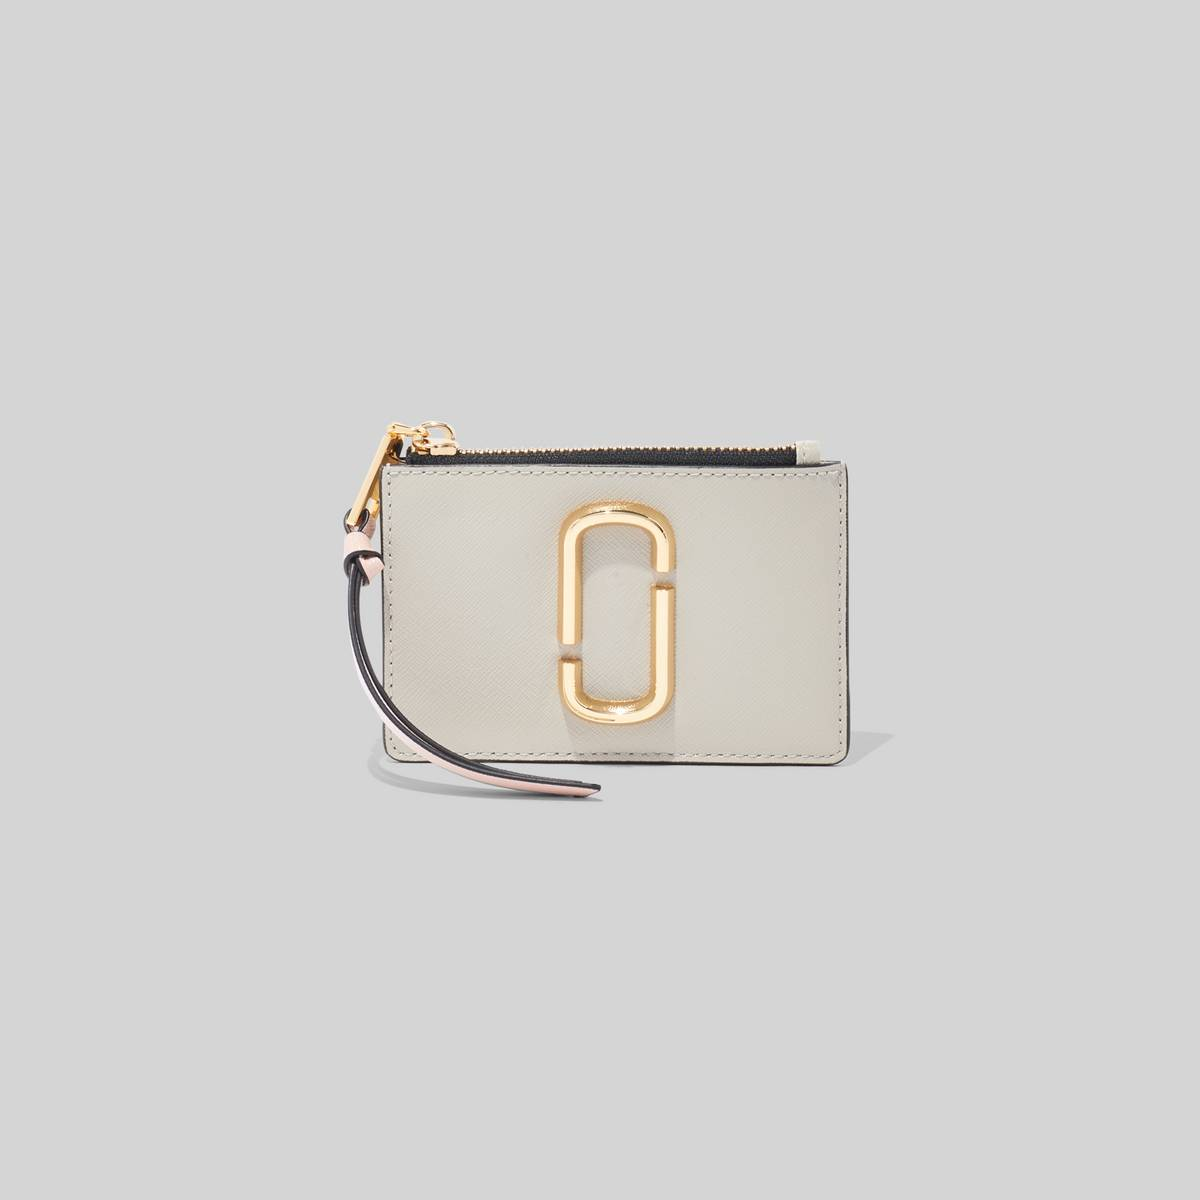 Topped of with a handy pull zip, the Snapshot Top Zip Multi Wallet features a ID case at the back to get in and out of wherever you need to be. | MARC JACOBS Women\\'s The Snapshot Top Zip Multi Wallet in Dust Multi